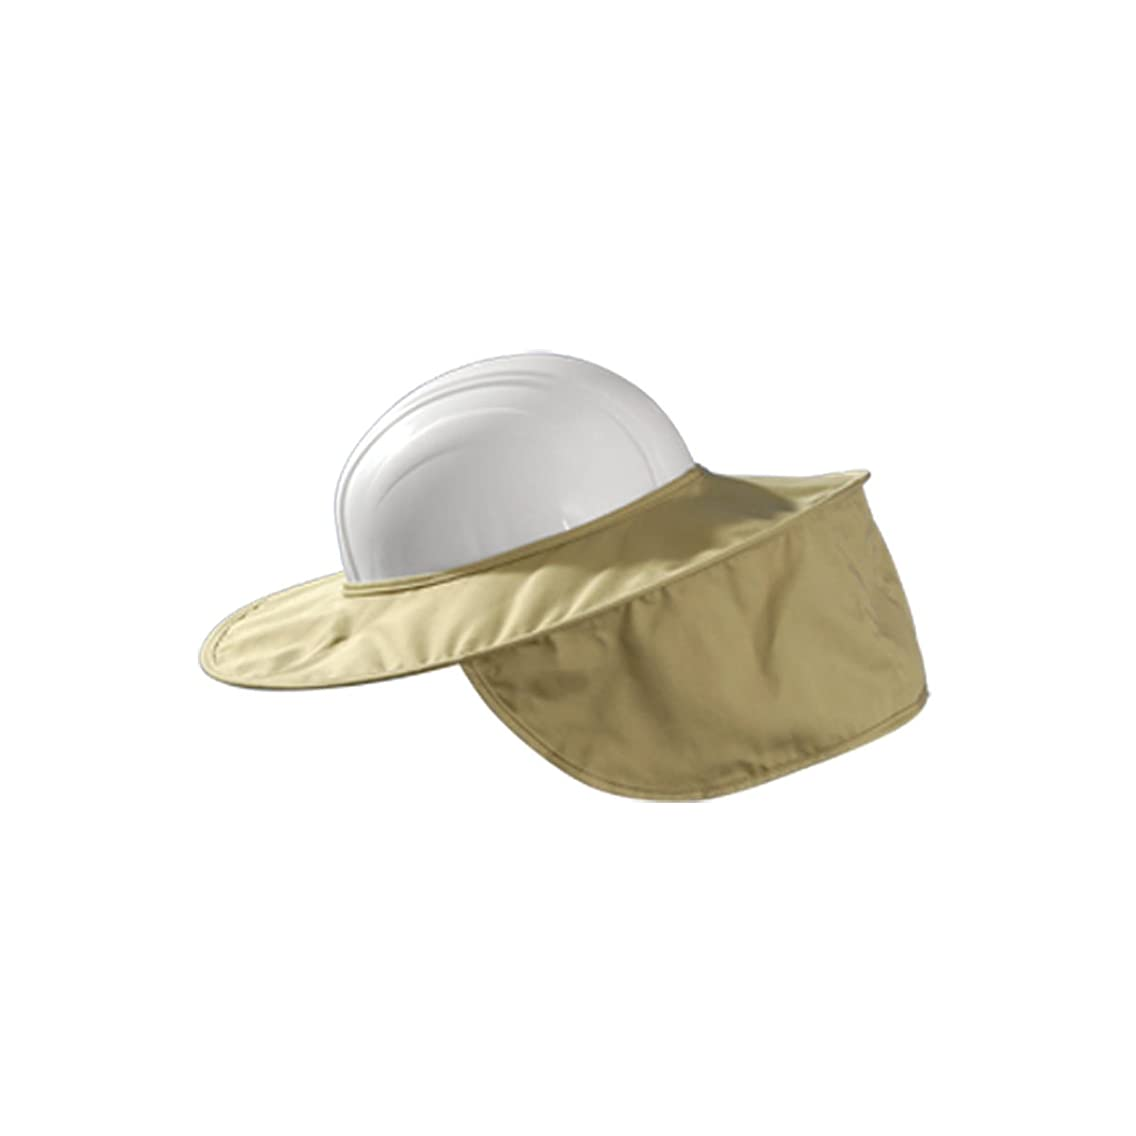 Occunomix 561-899-KHK Stow Away Hard Hat Shade- Khaki